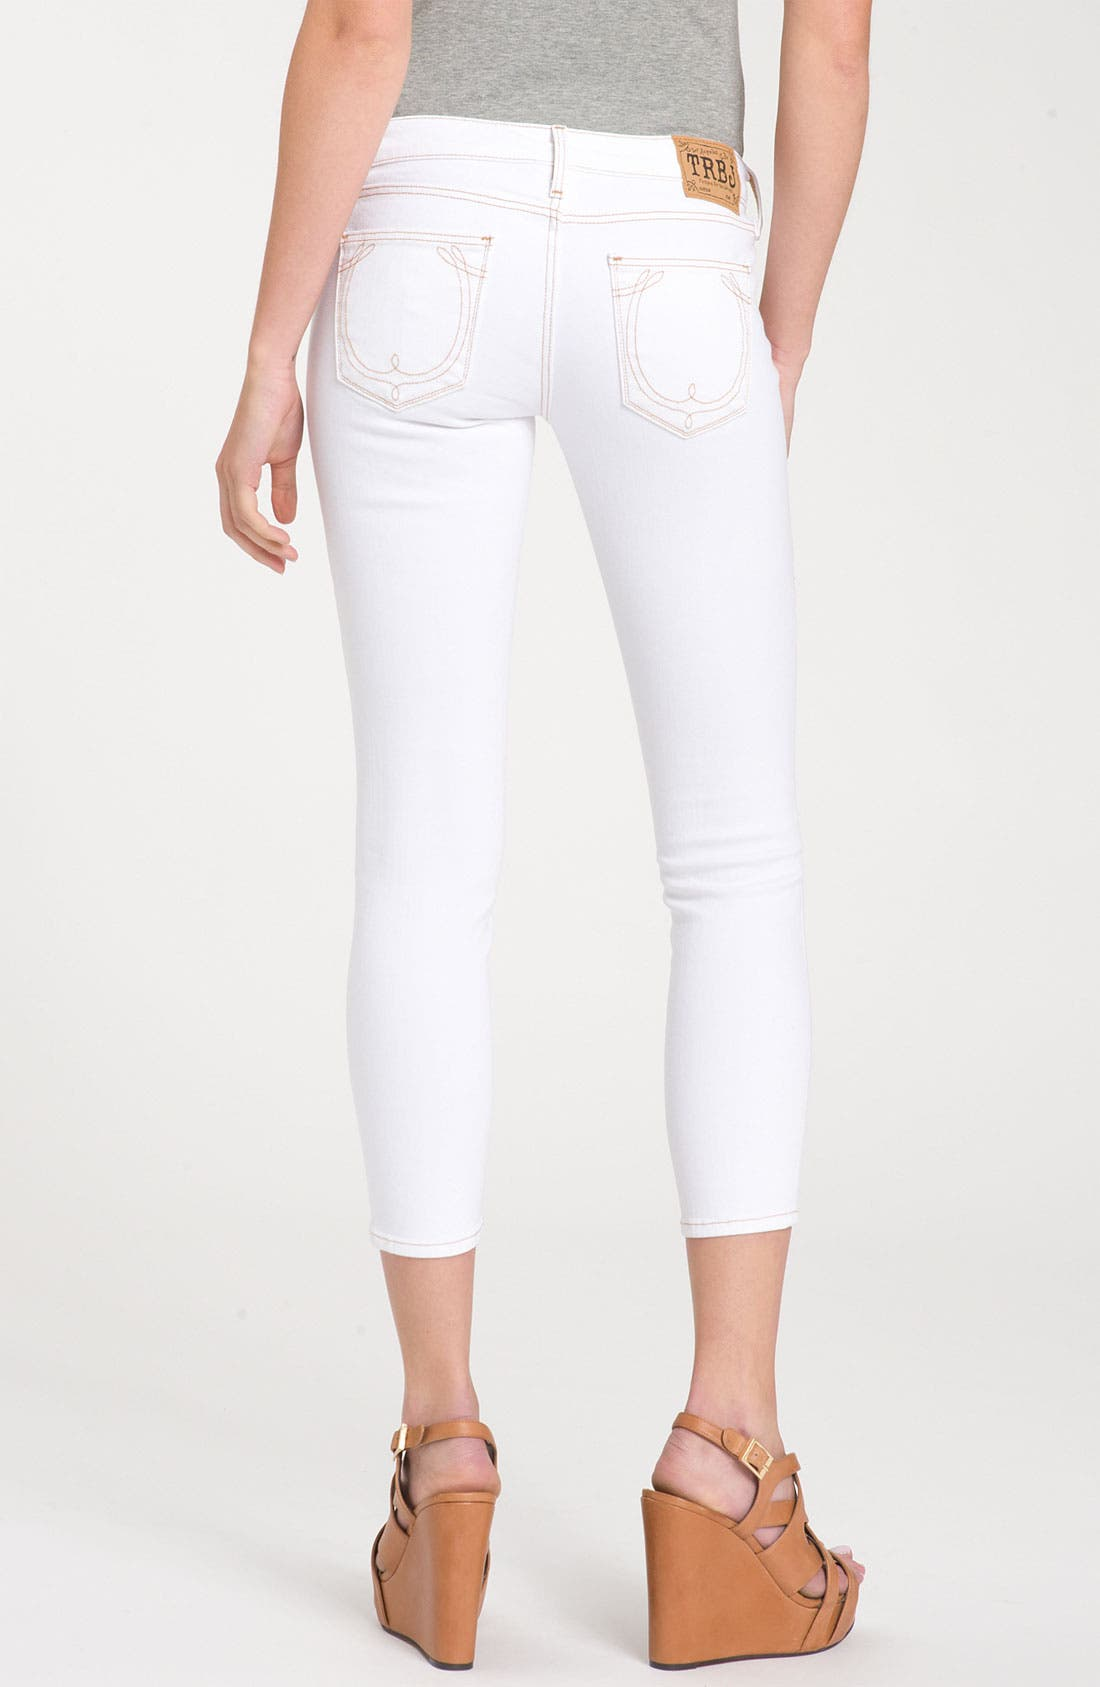 Alternate Image 1 Selected - True Religion Brand Jeans 'Brooklyn' Skinny Crop Jeans (Optic White)